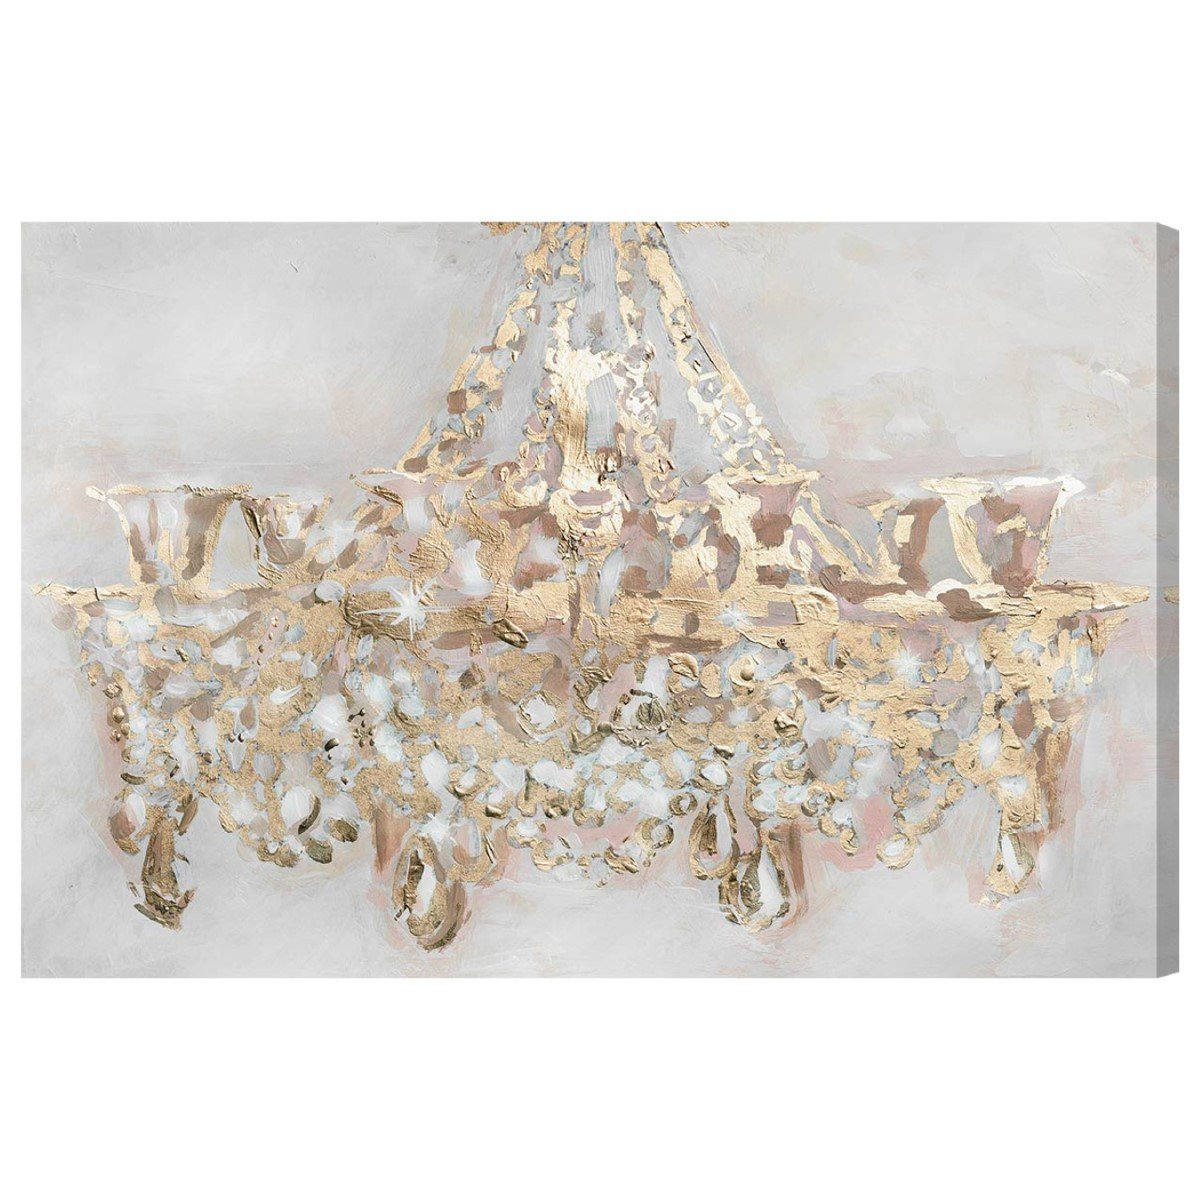 Candelabro' Contemporary Canvas Wall Art Print for Home Decor and Office. The Classic Wall Decor Collection by The Oliver Gal Artist Co. Gallery Wrapped and Ready to Hang. 60x40 inch by The Oliver Gal Artist Co.